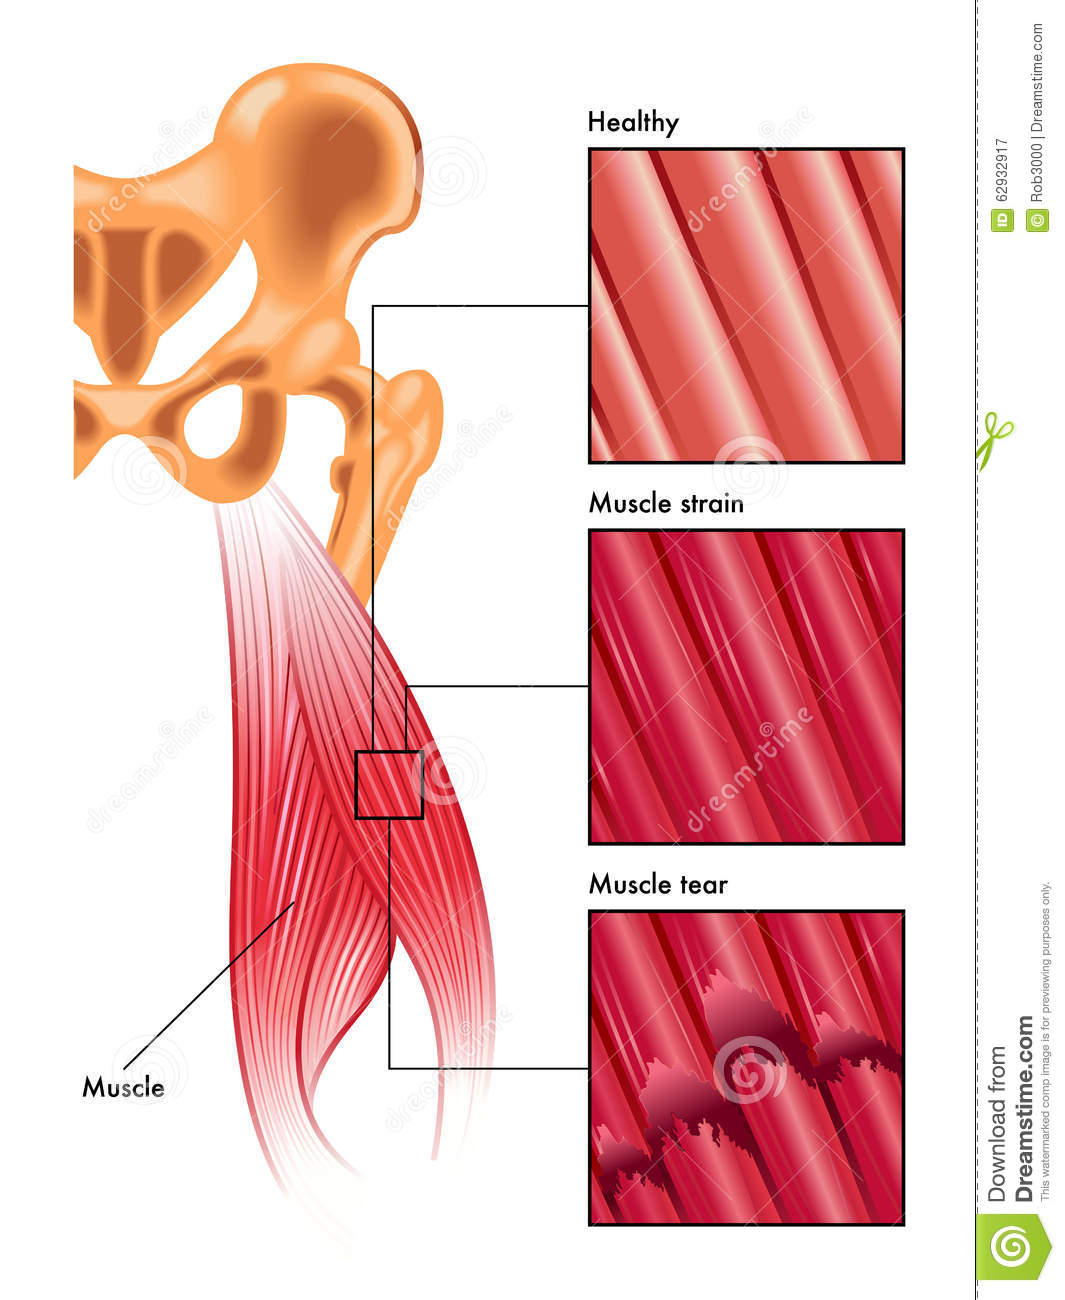 How to Treat a Pulled Muscle: 11 Steps (with Pictures) Pictures of pulled back muscles